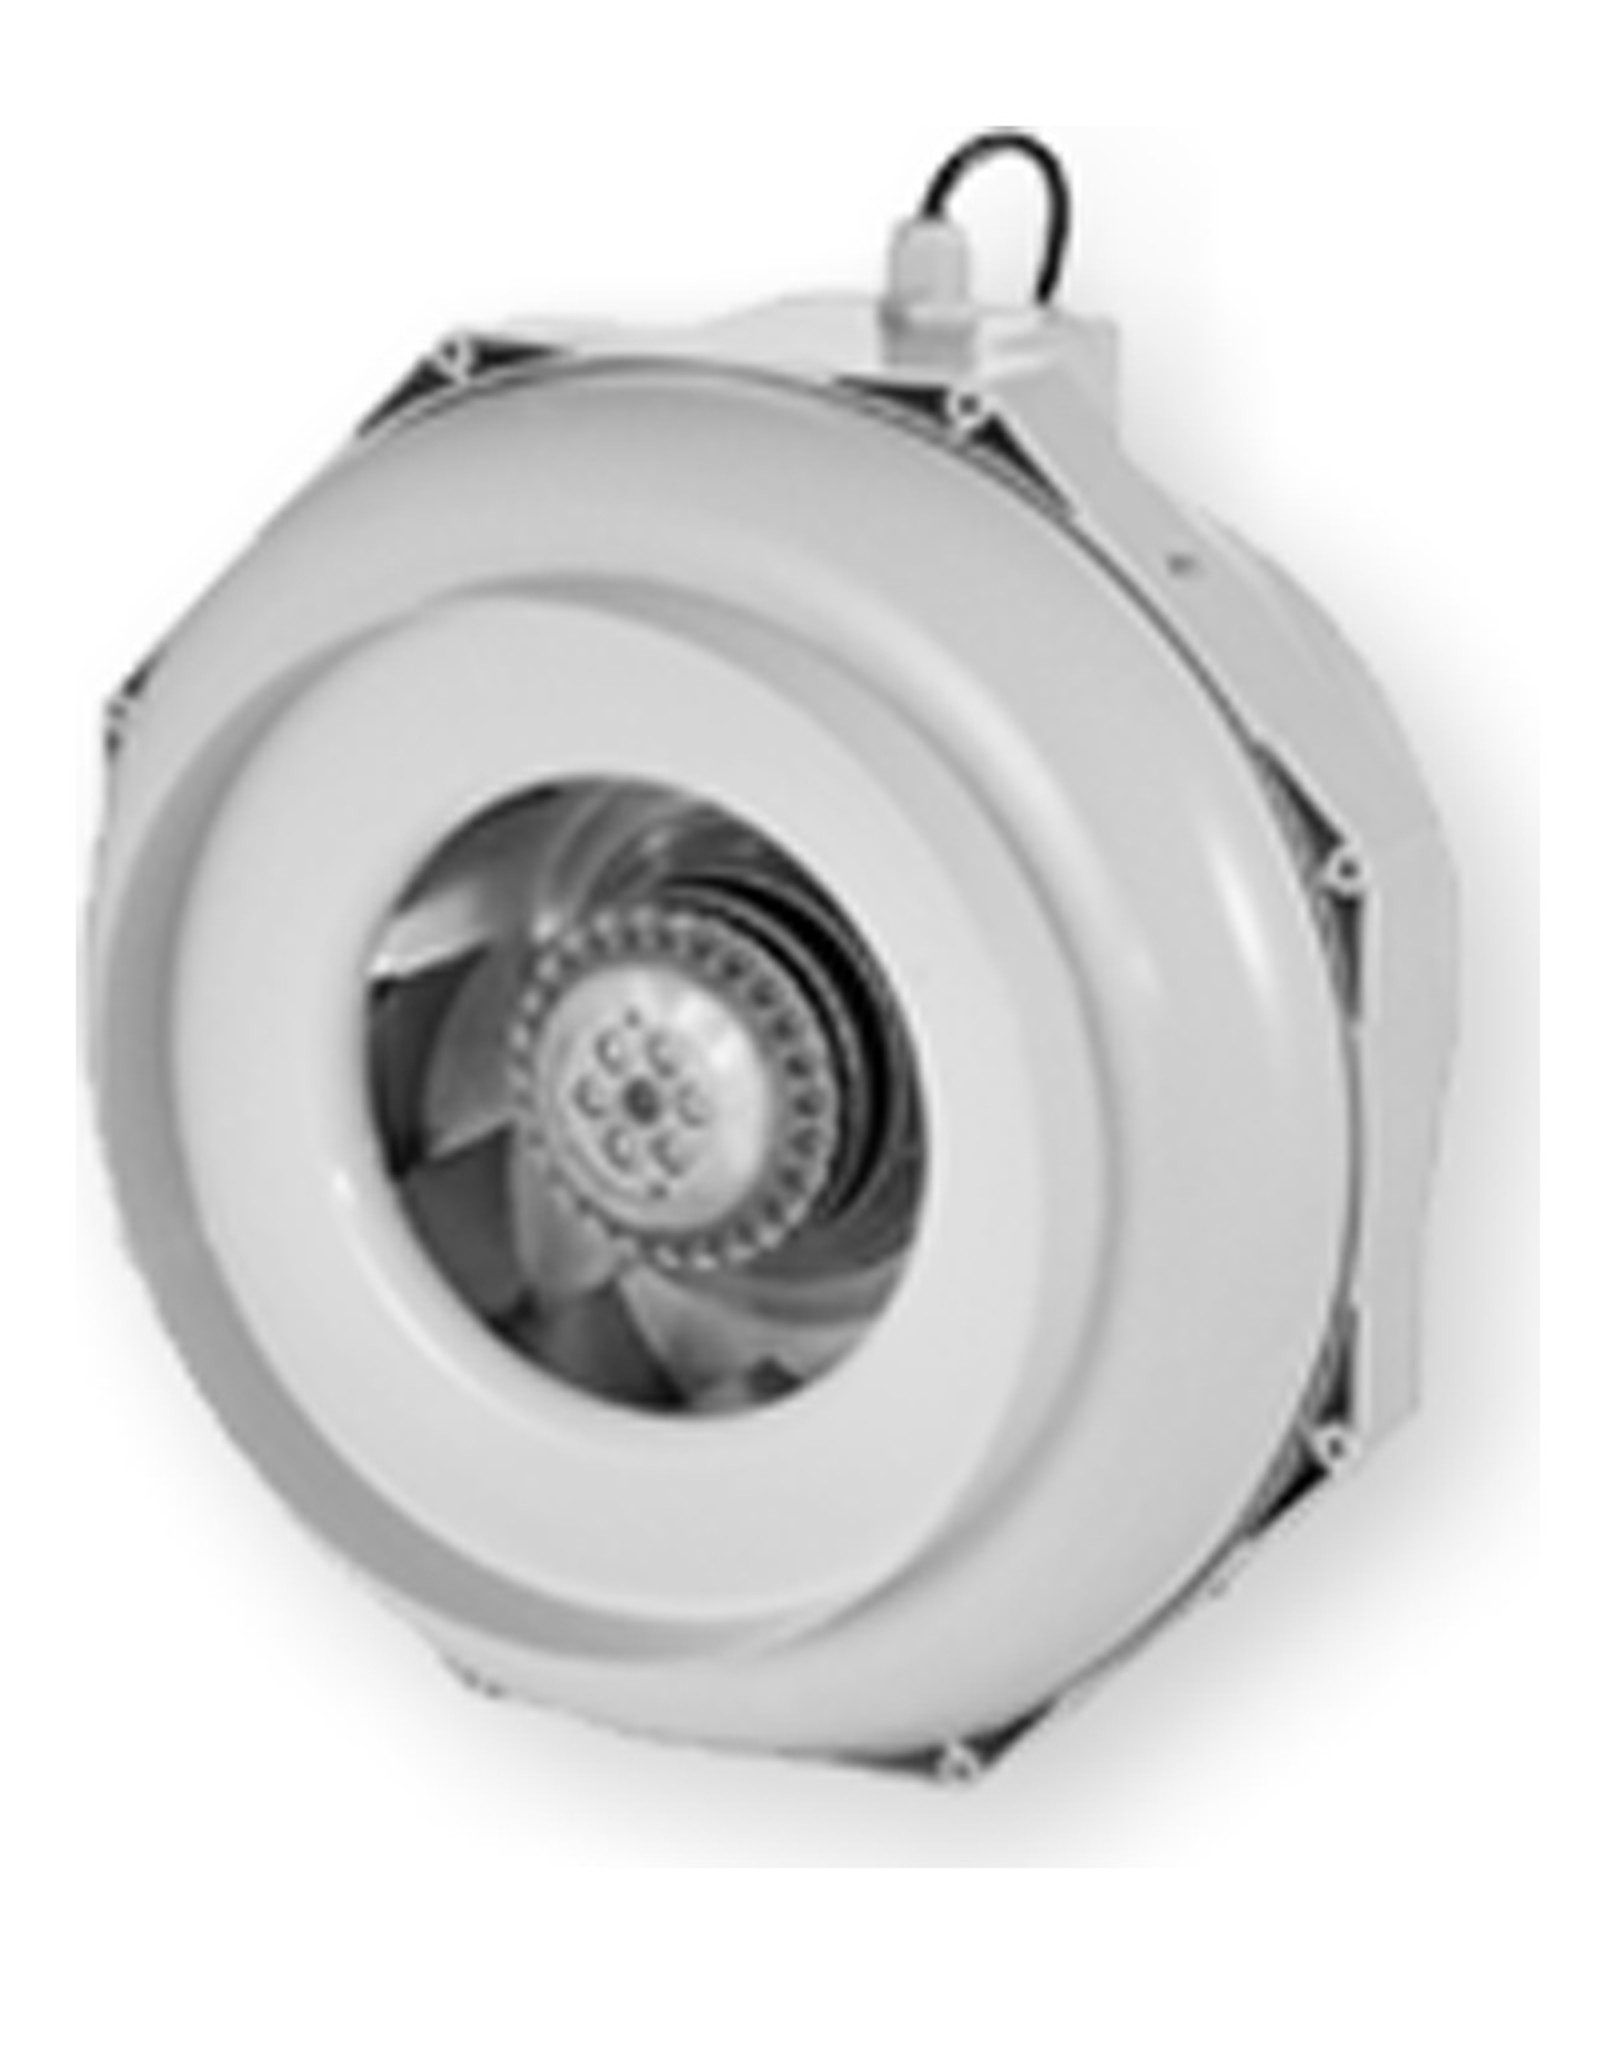 CAN CAN FAN RKW 250